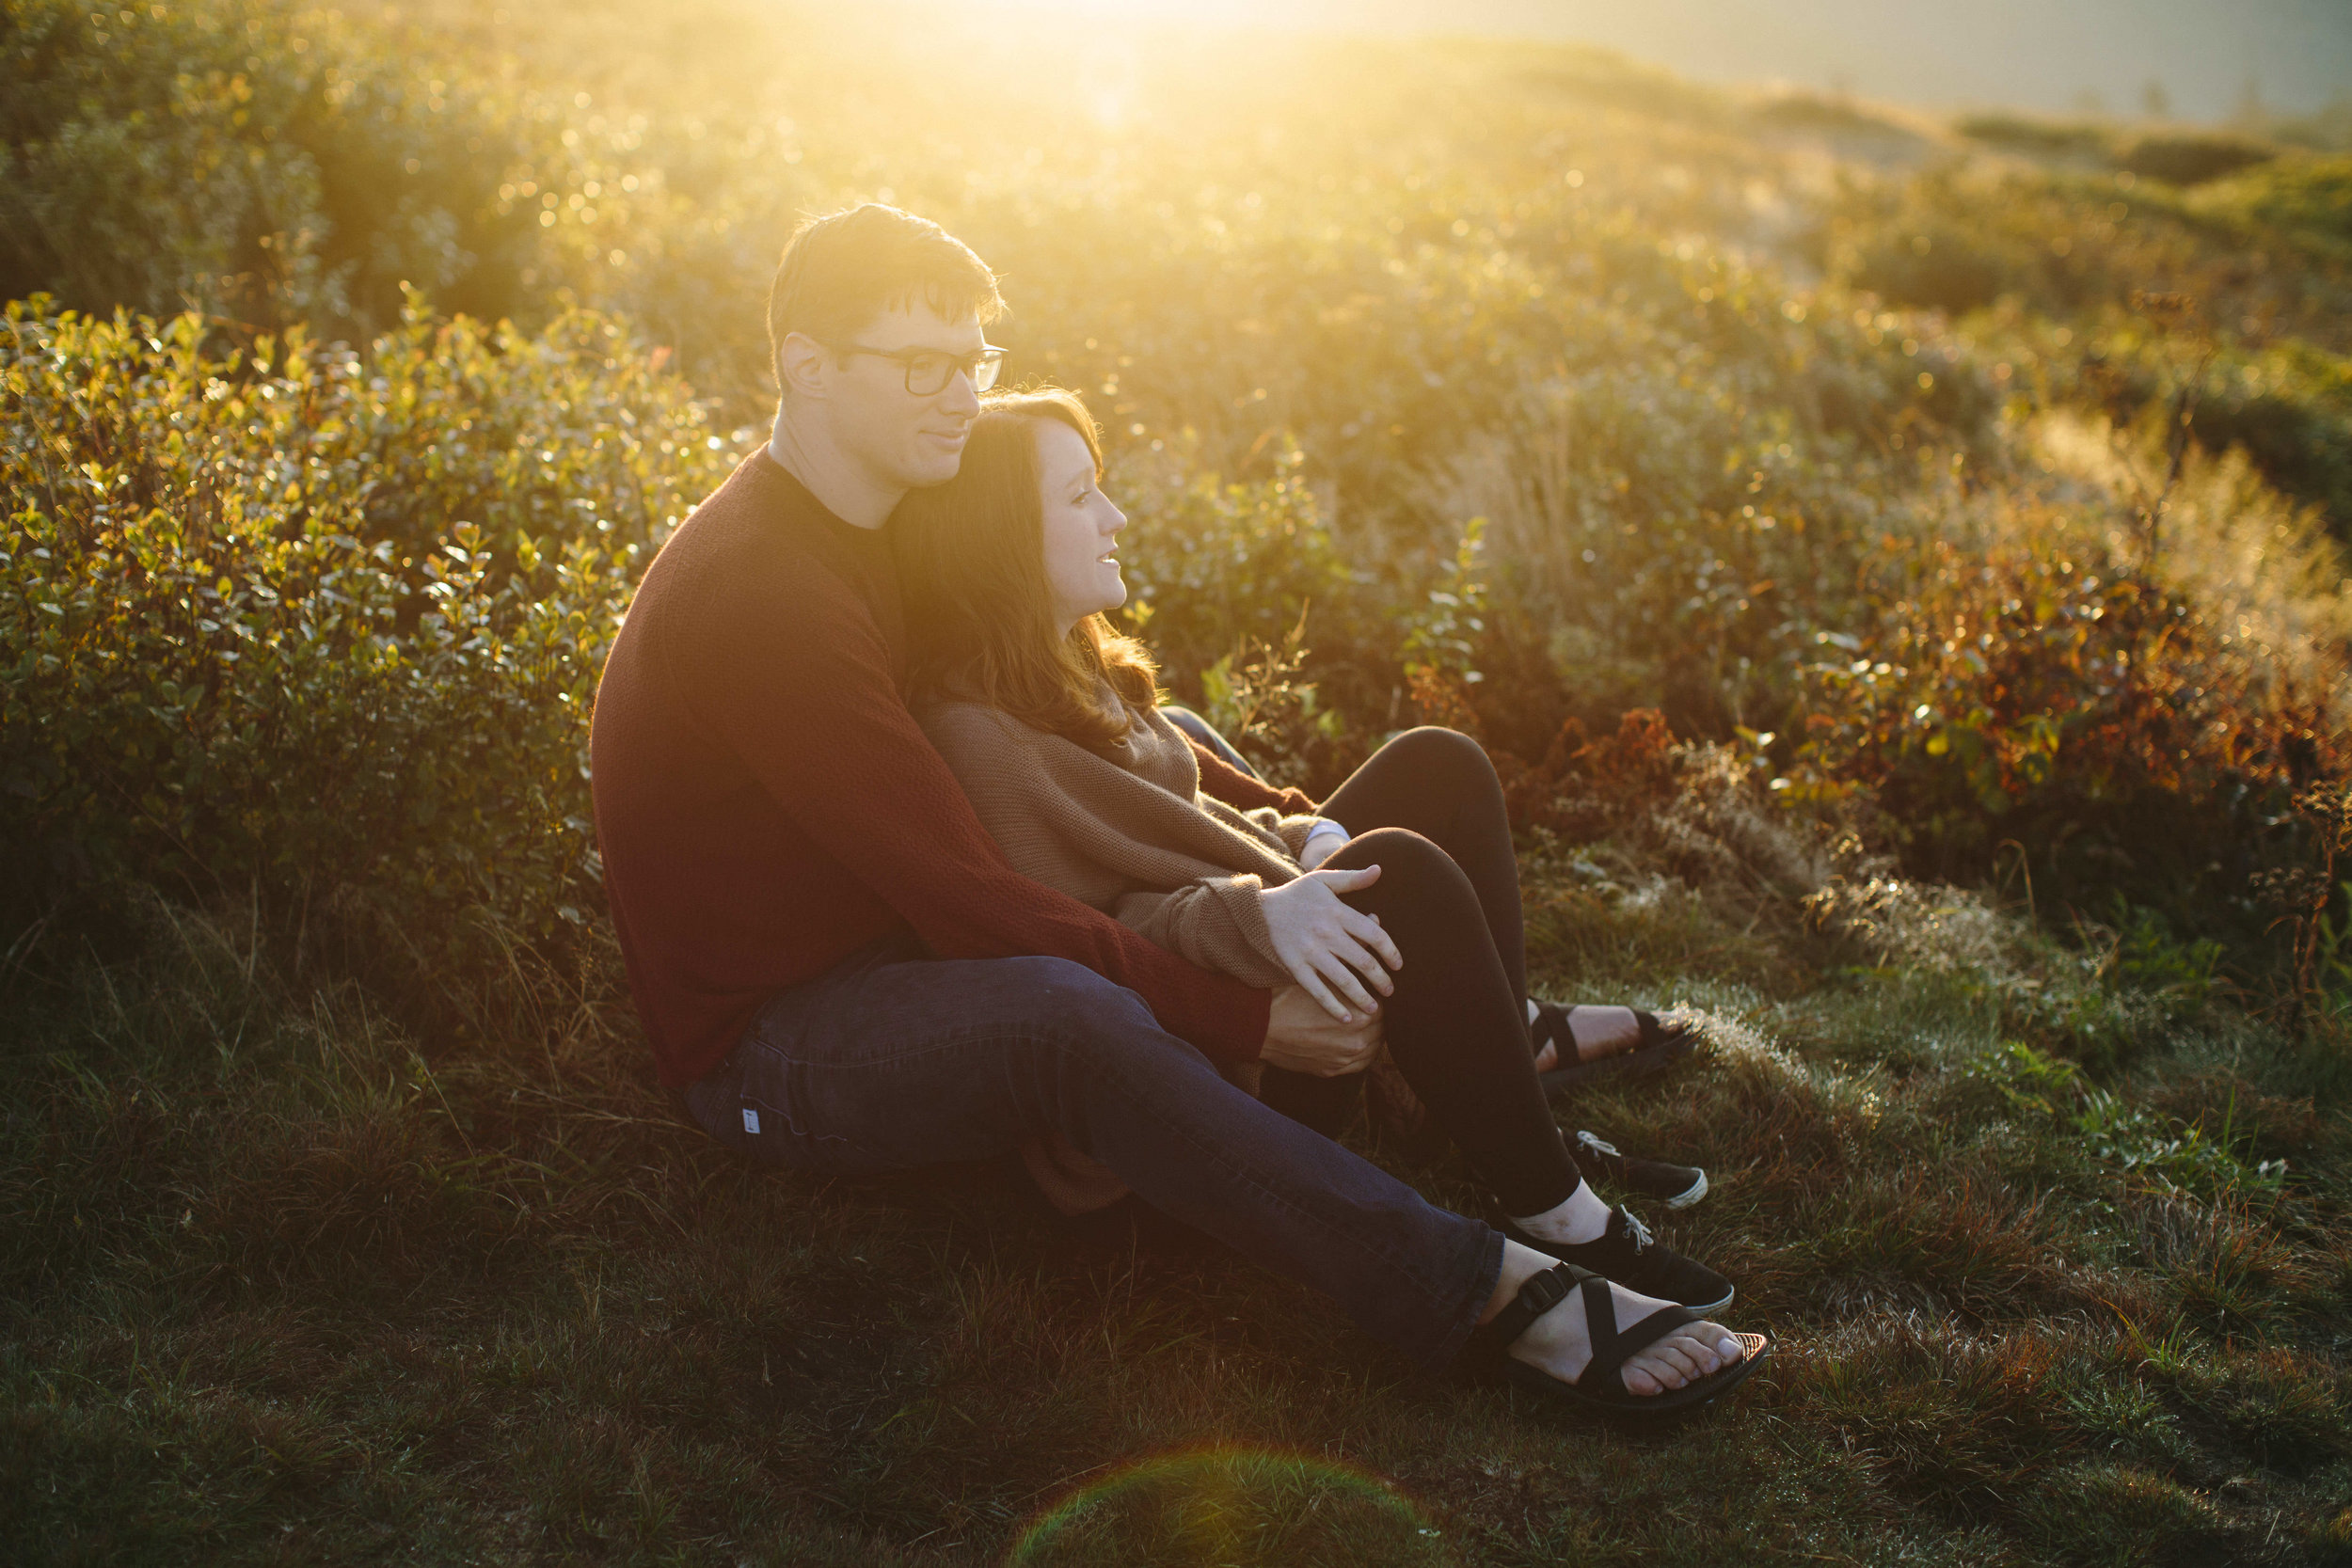 Maternity Session at Roan Mountain Tennessee. Engagement Session at Roan Mountain, TN. Johnson City TN Wedding photographer. Roan Mountain Wedding Photographer